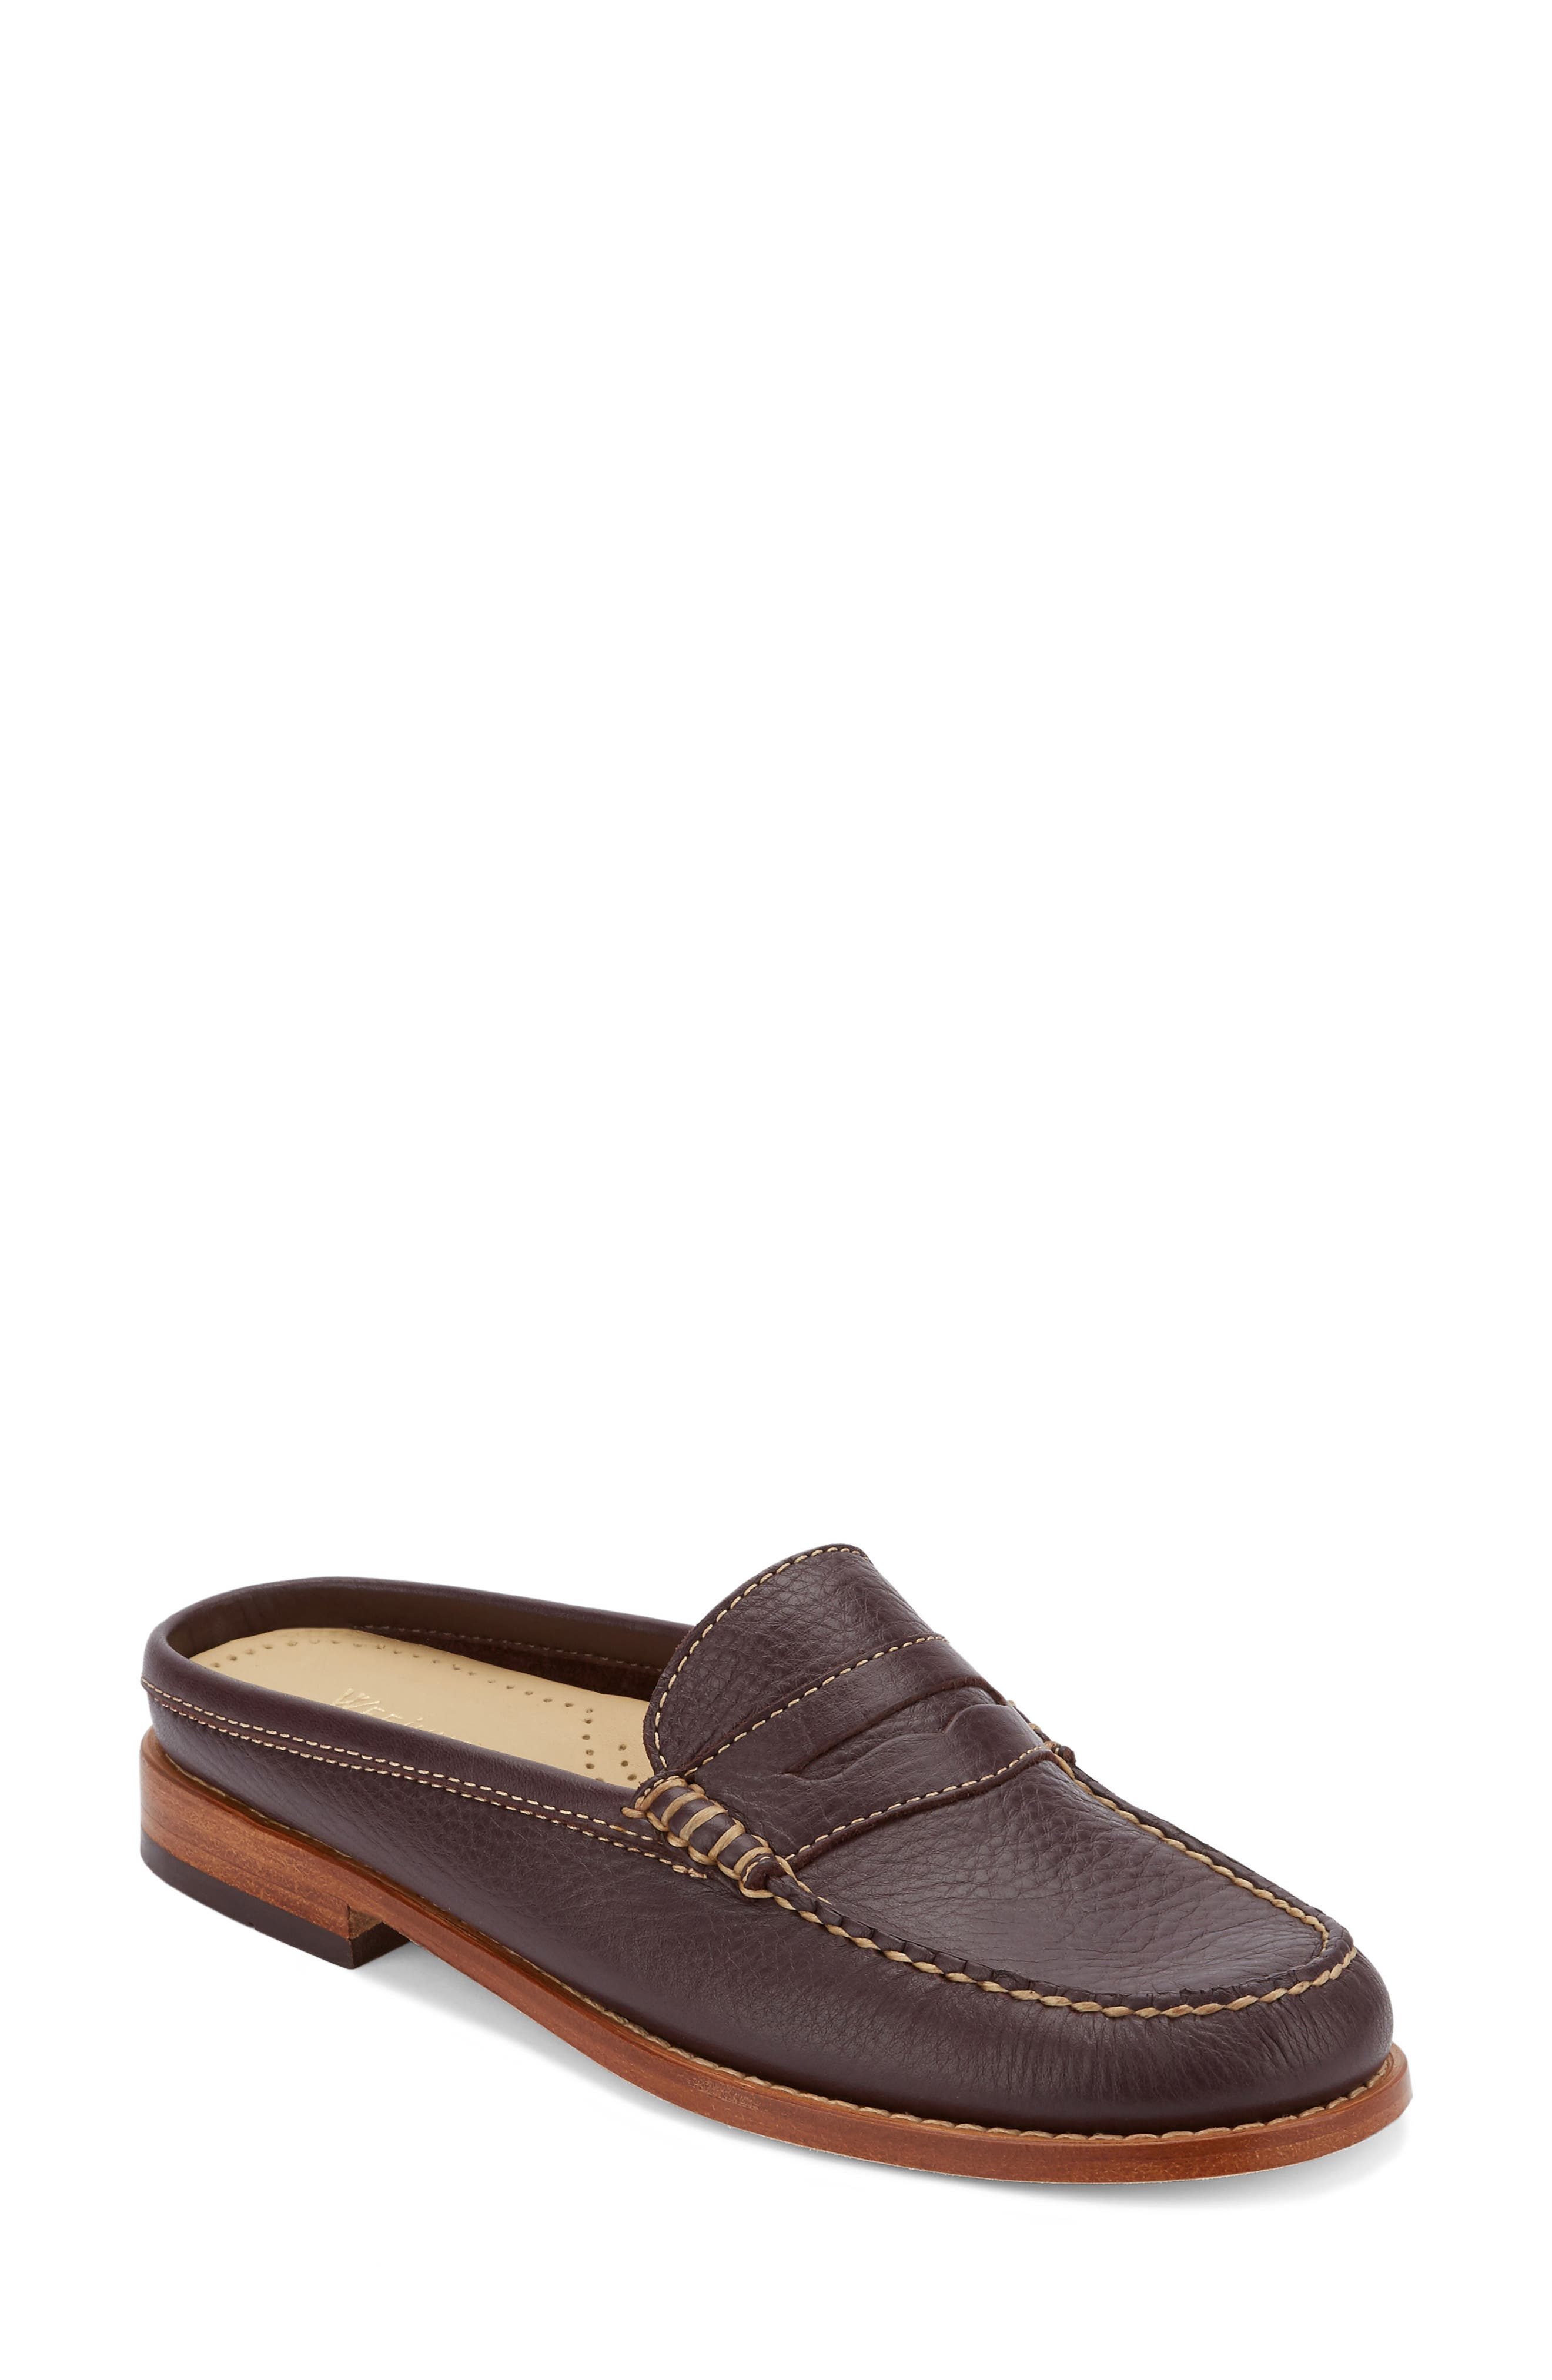 Wynn Loafer Mule,                             Main thumbnail 8, color,